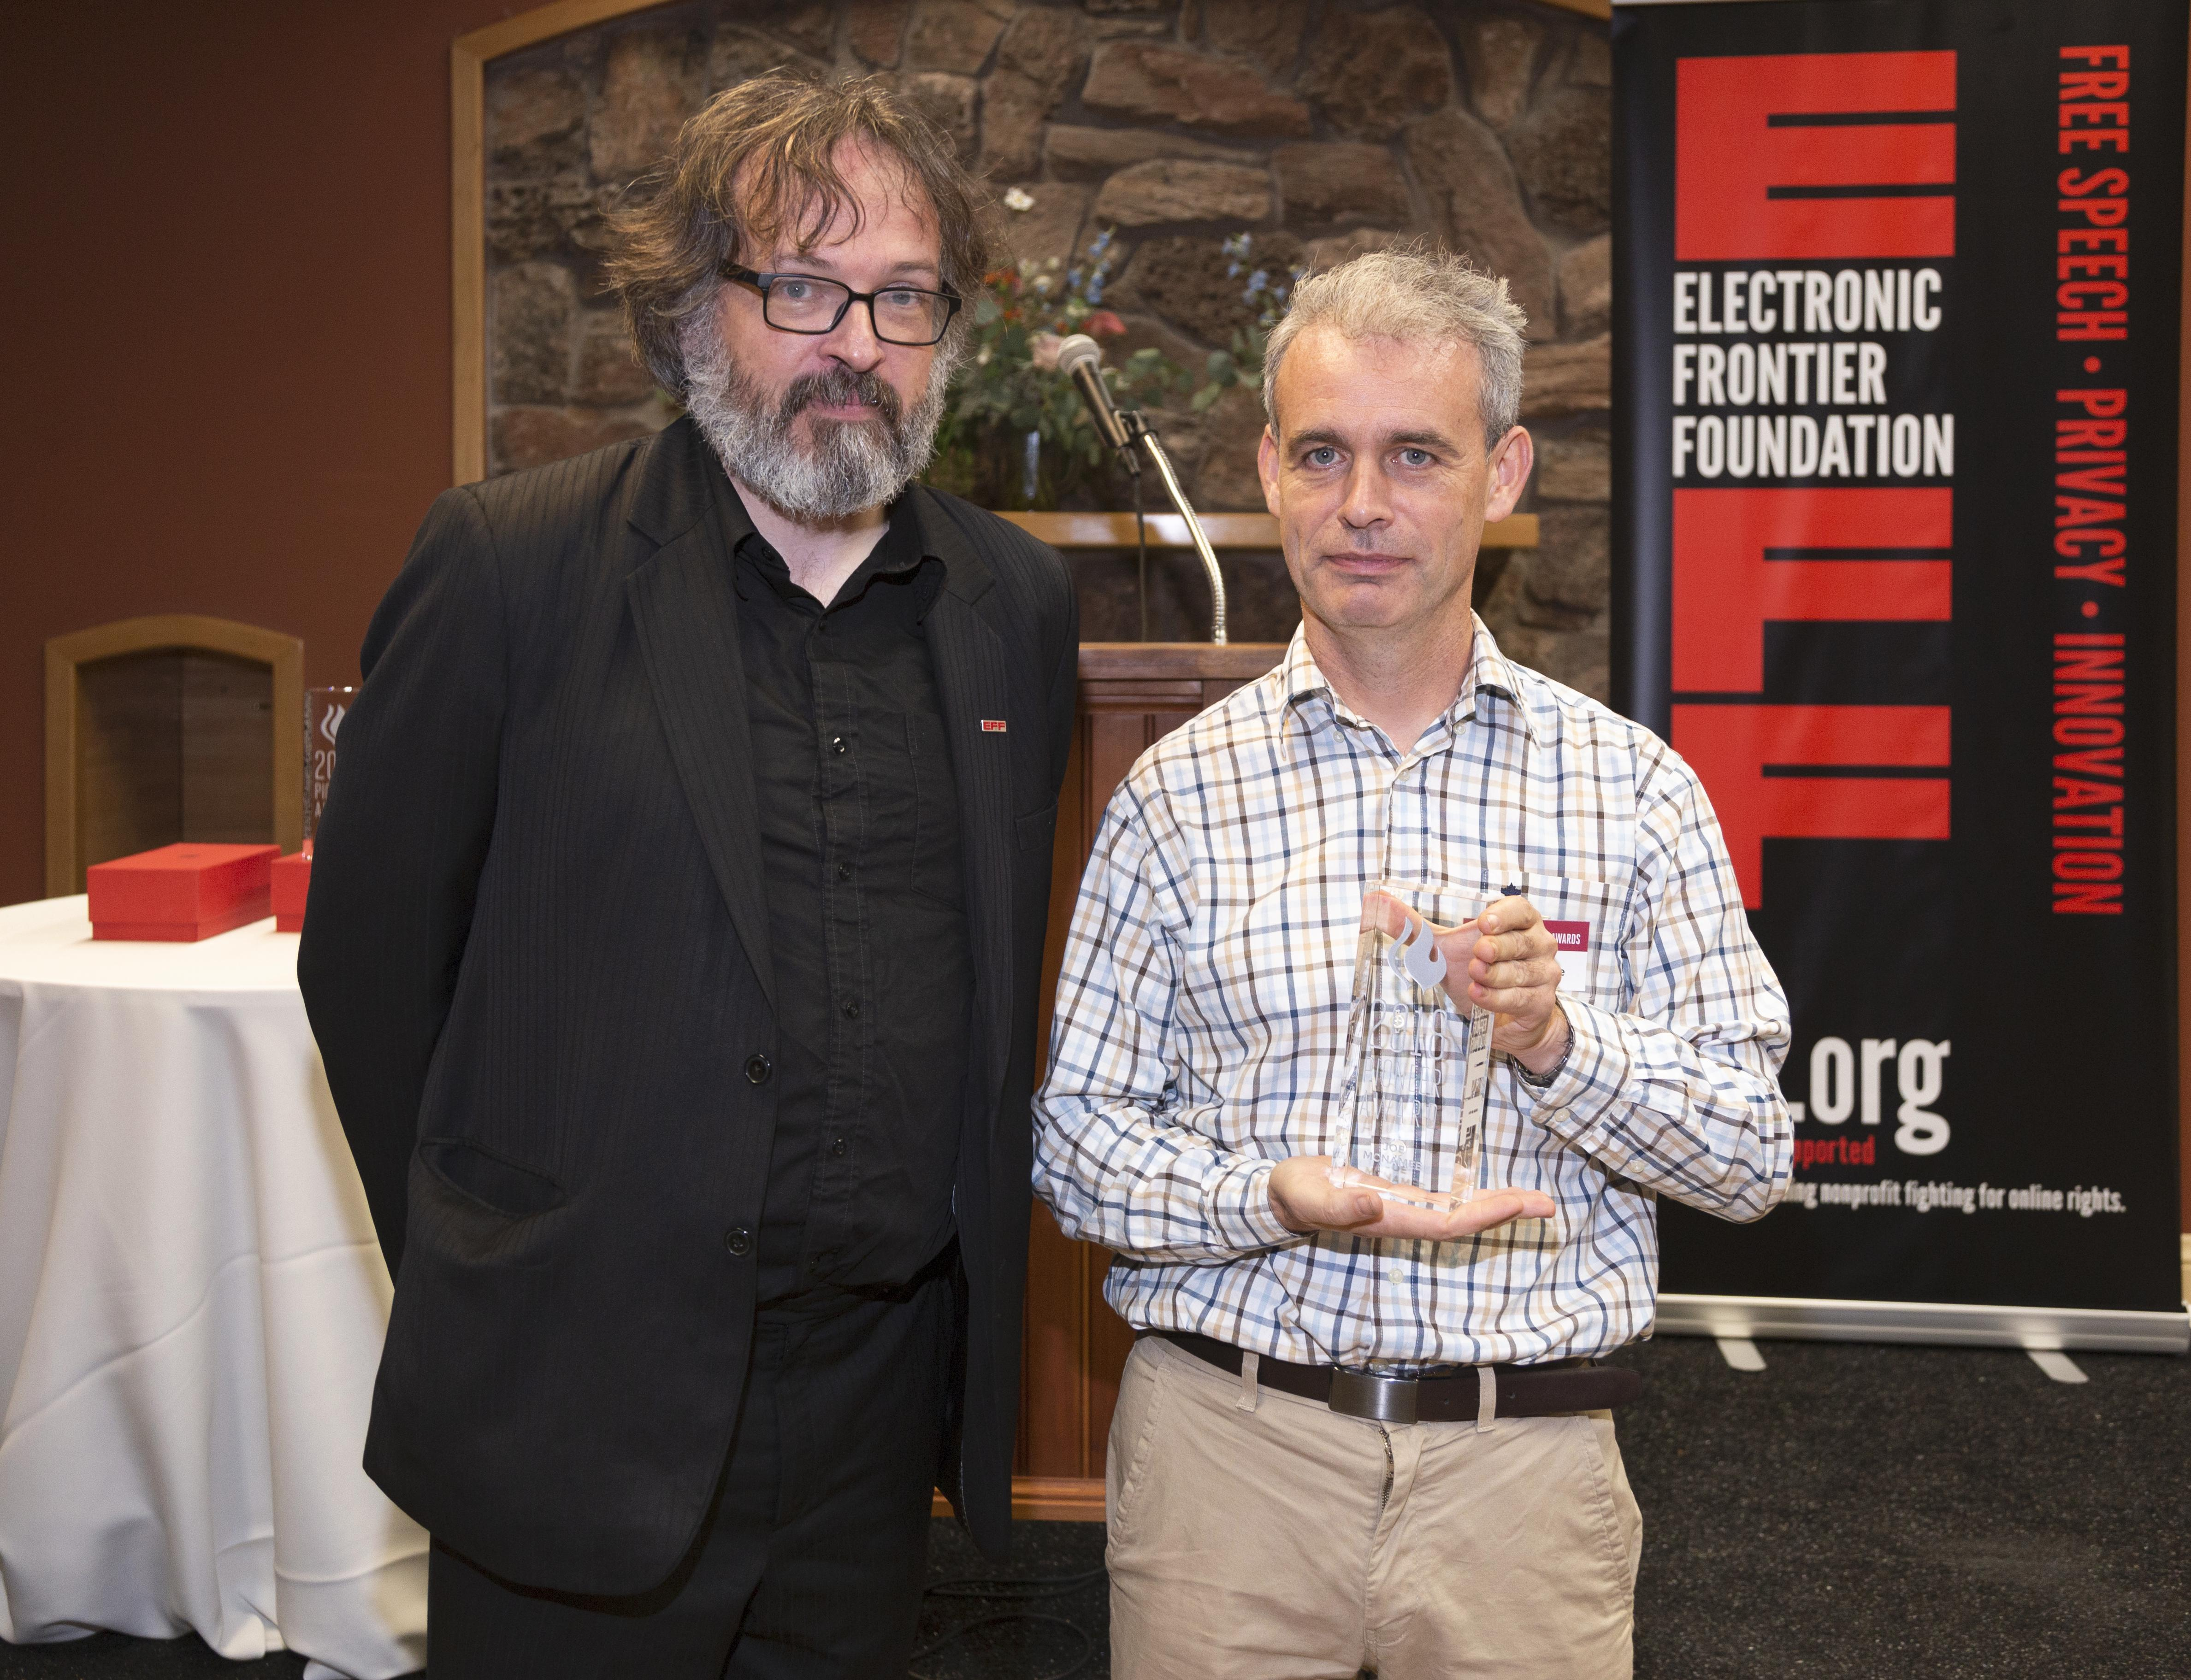 EFF's International Director, Danny O'Brien and